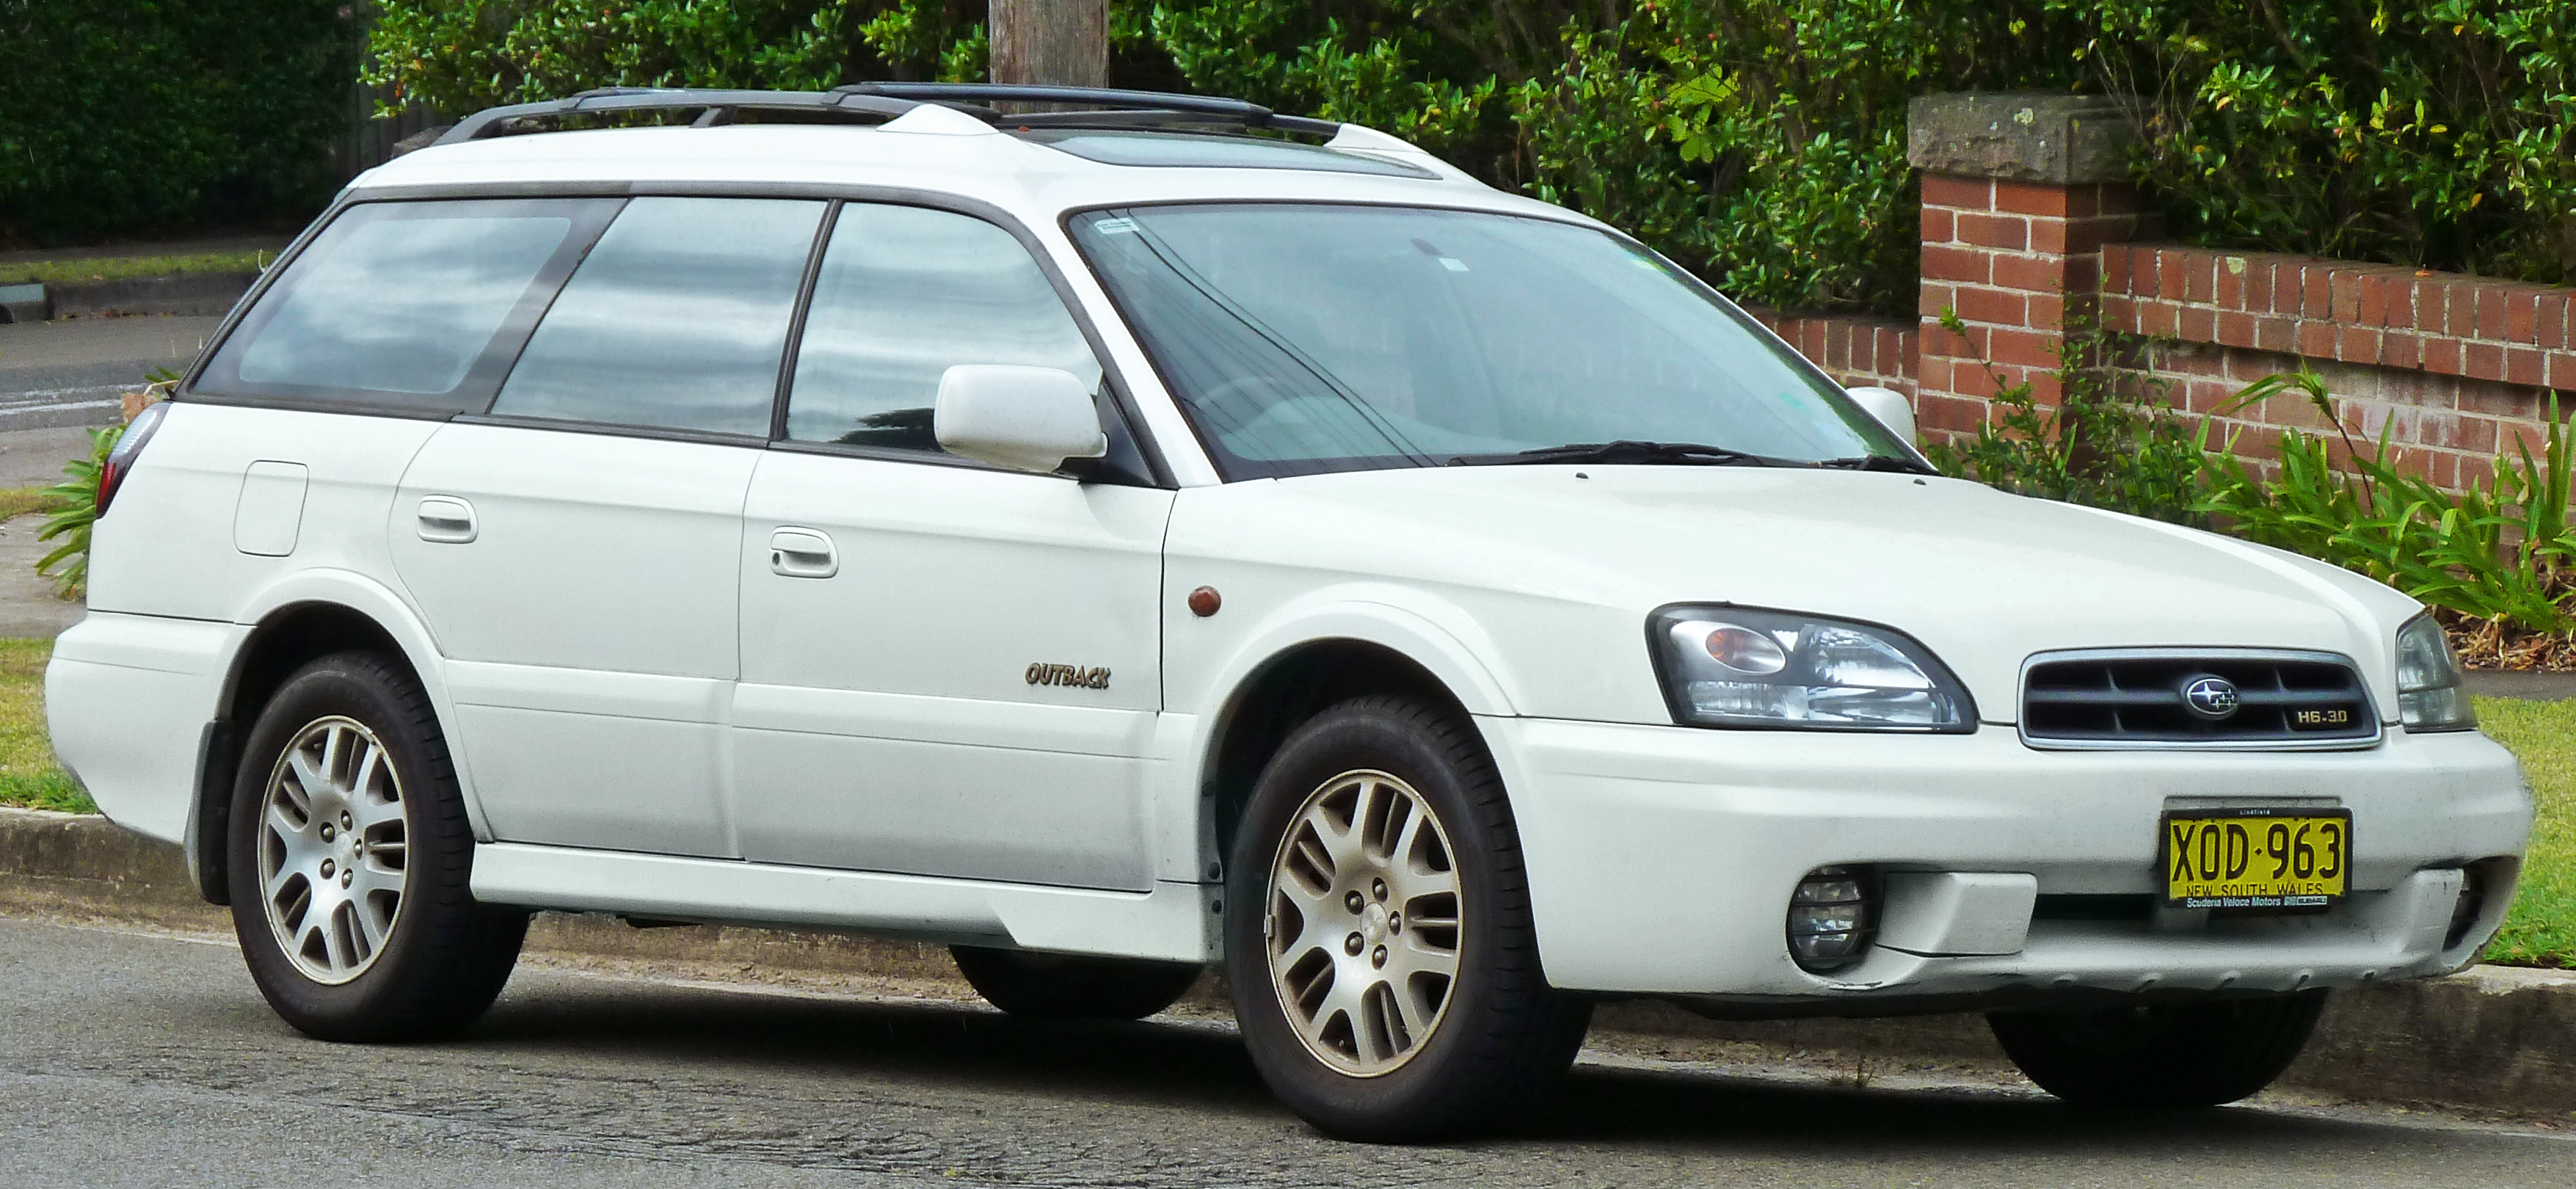 Pictures of subaru legacy 3 2003